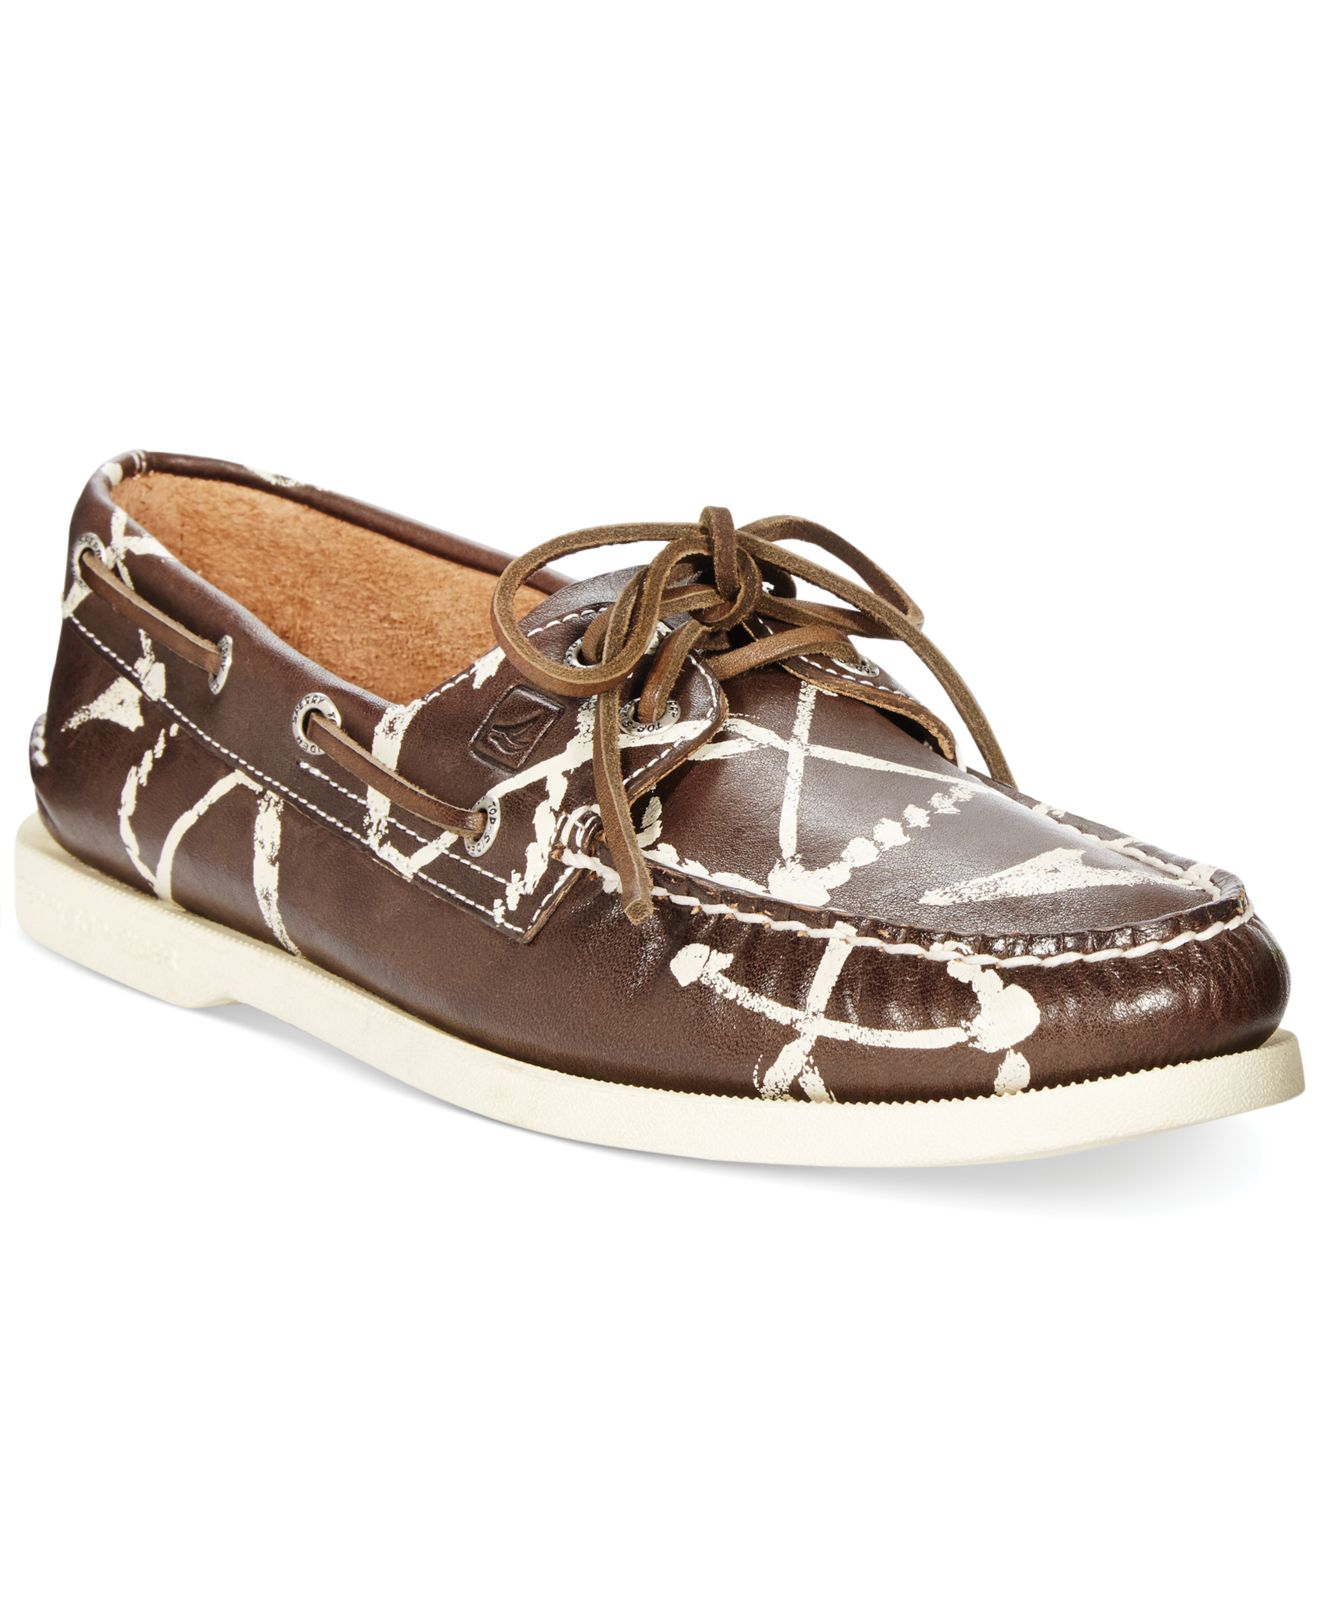 Sperry Top Sider Anchor Shoes